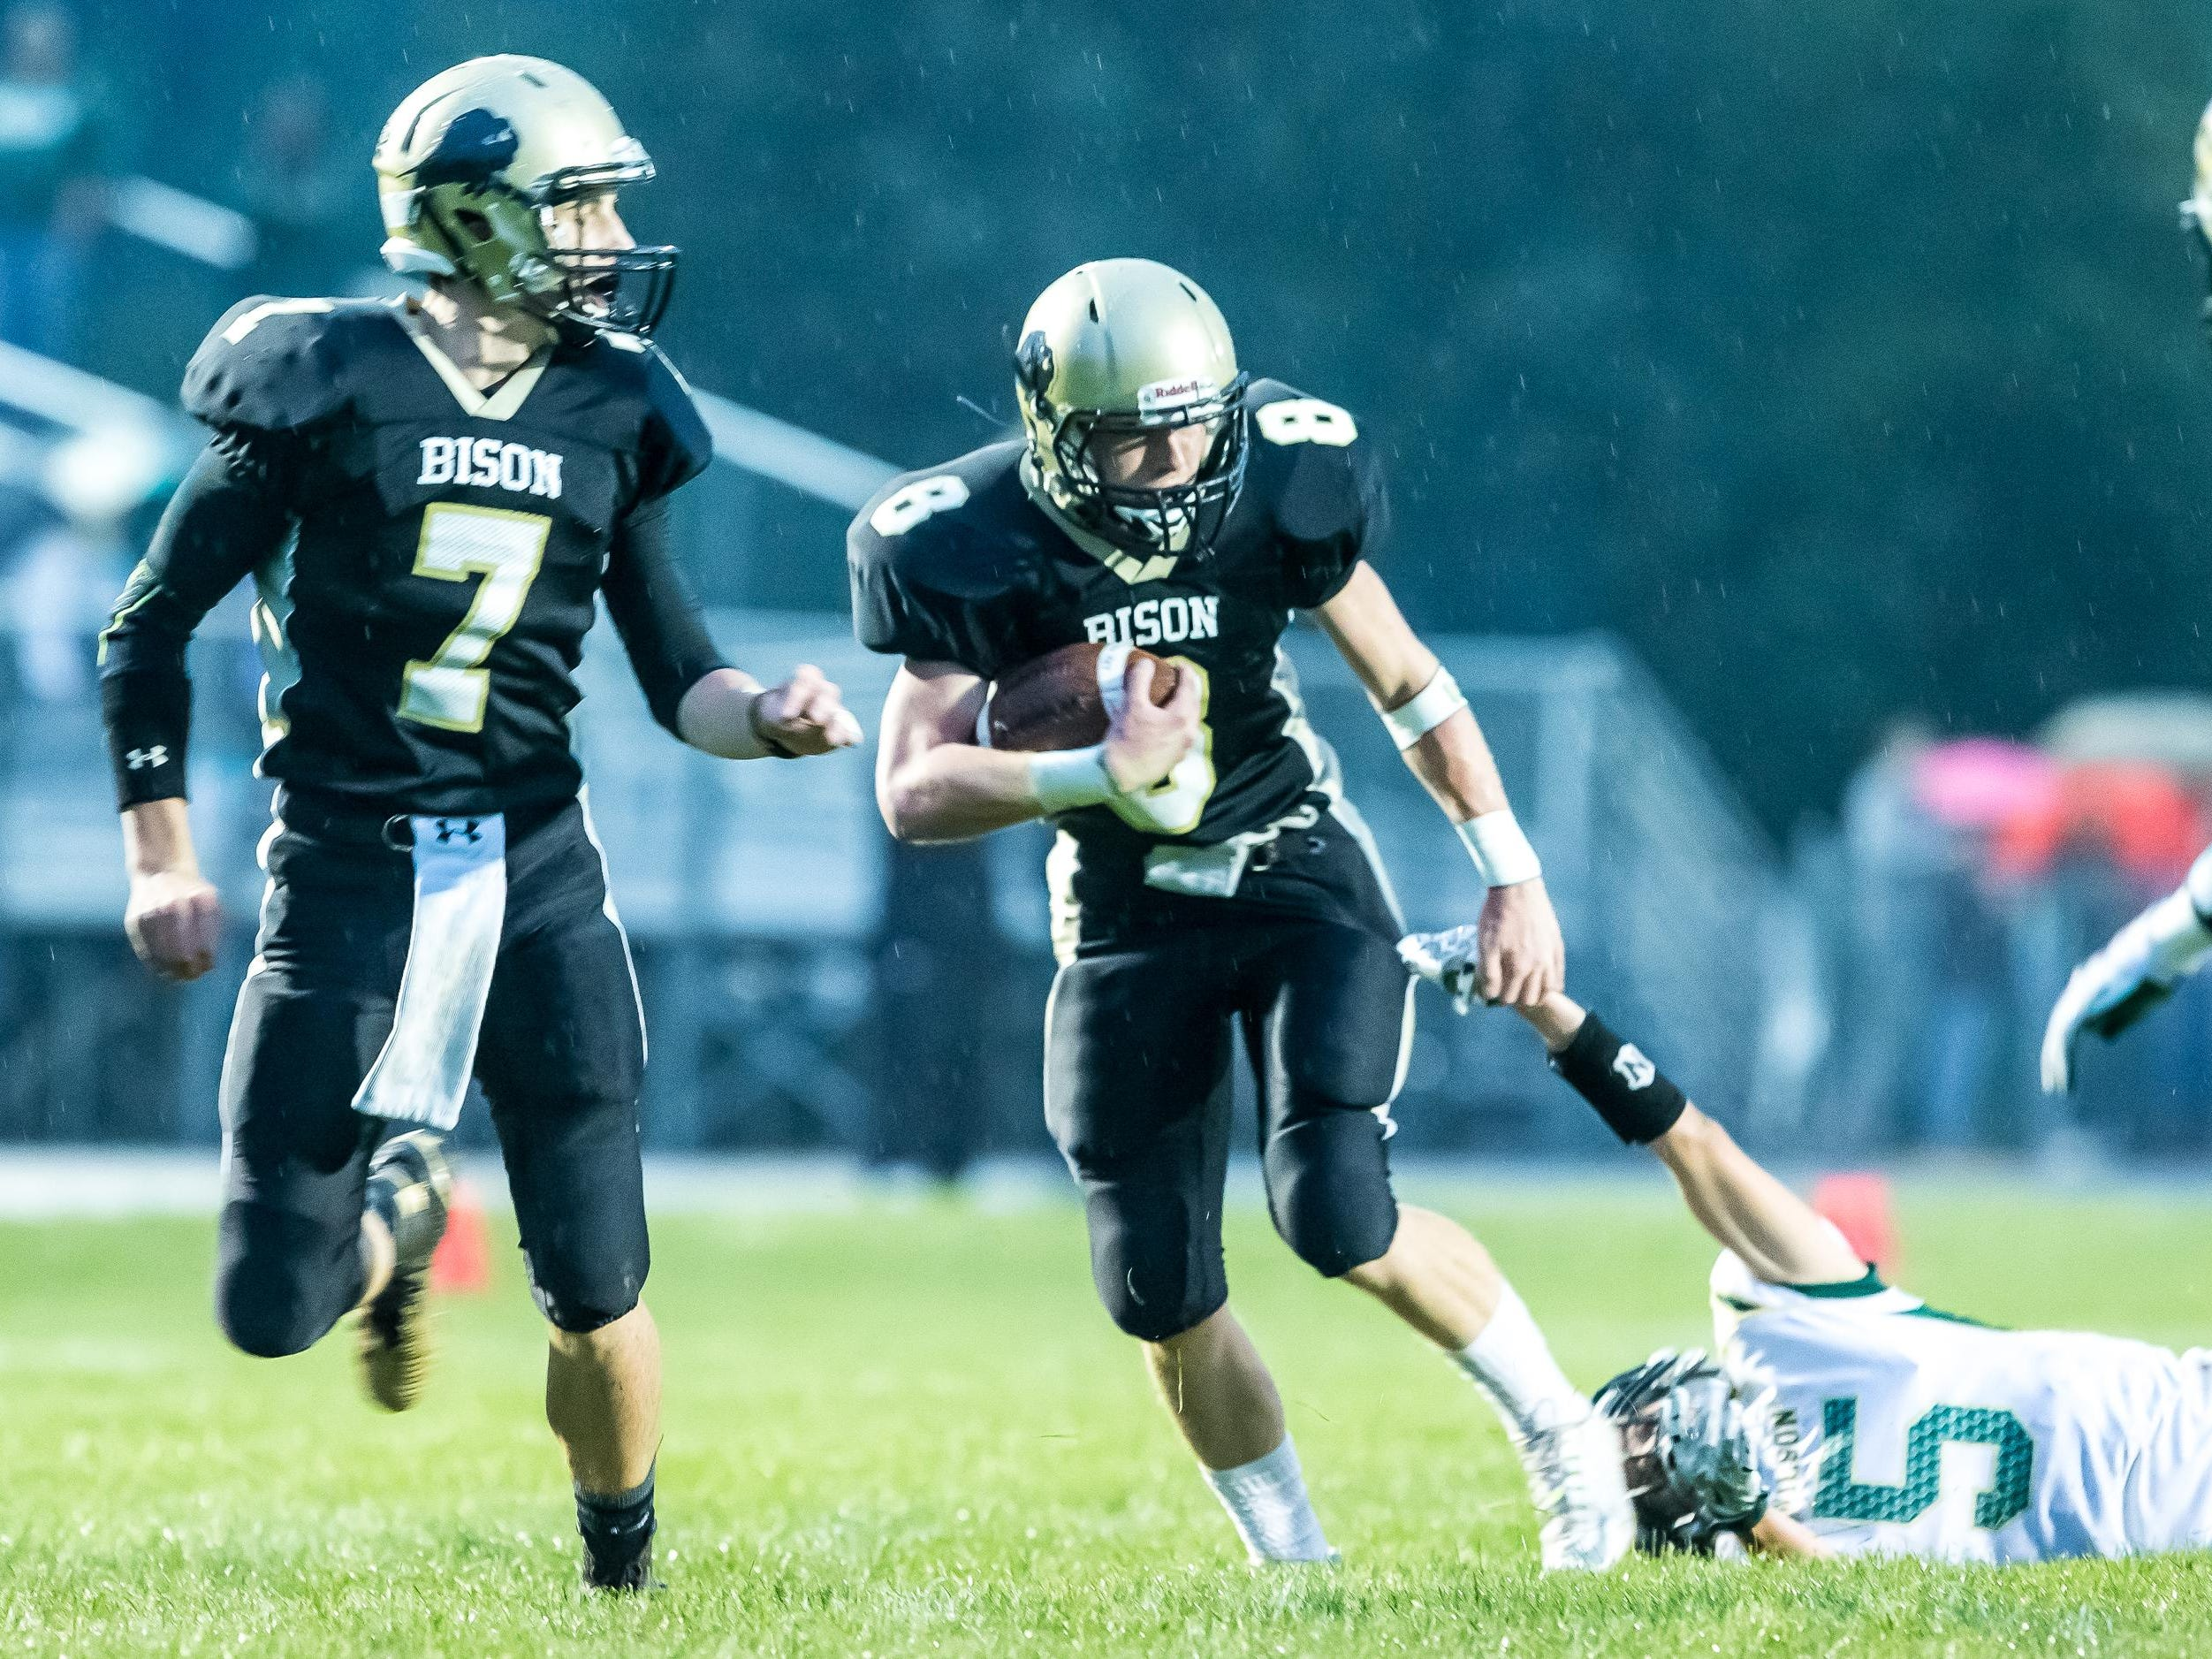 Buffalo Gap's Austin Comer pulls from the grasp of Wilson Memorial's Kyle Coombe during their game Friday.